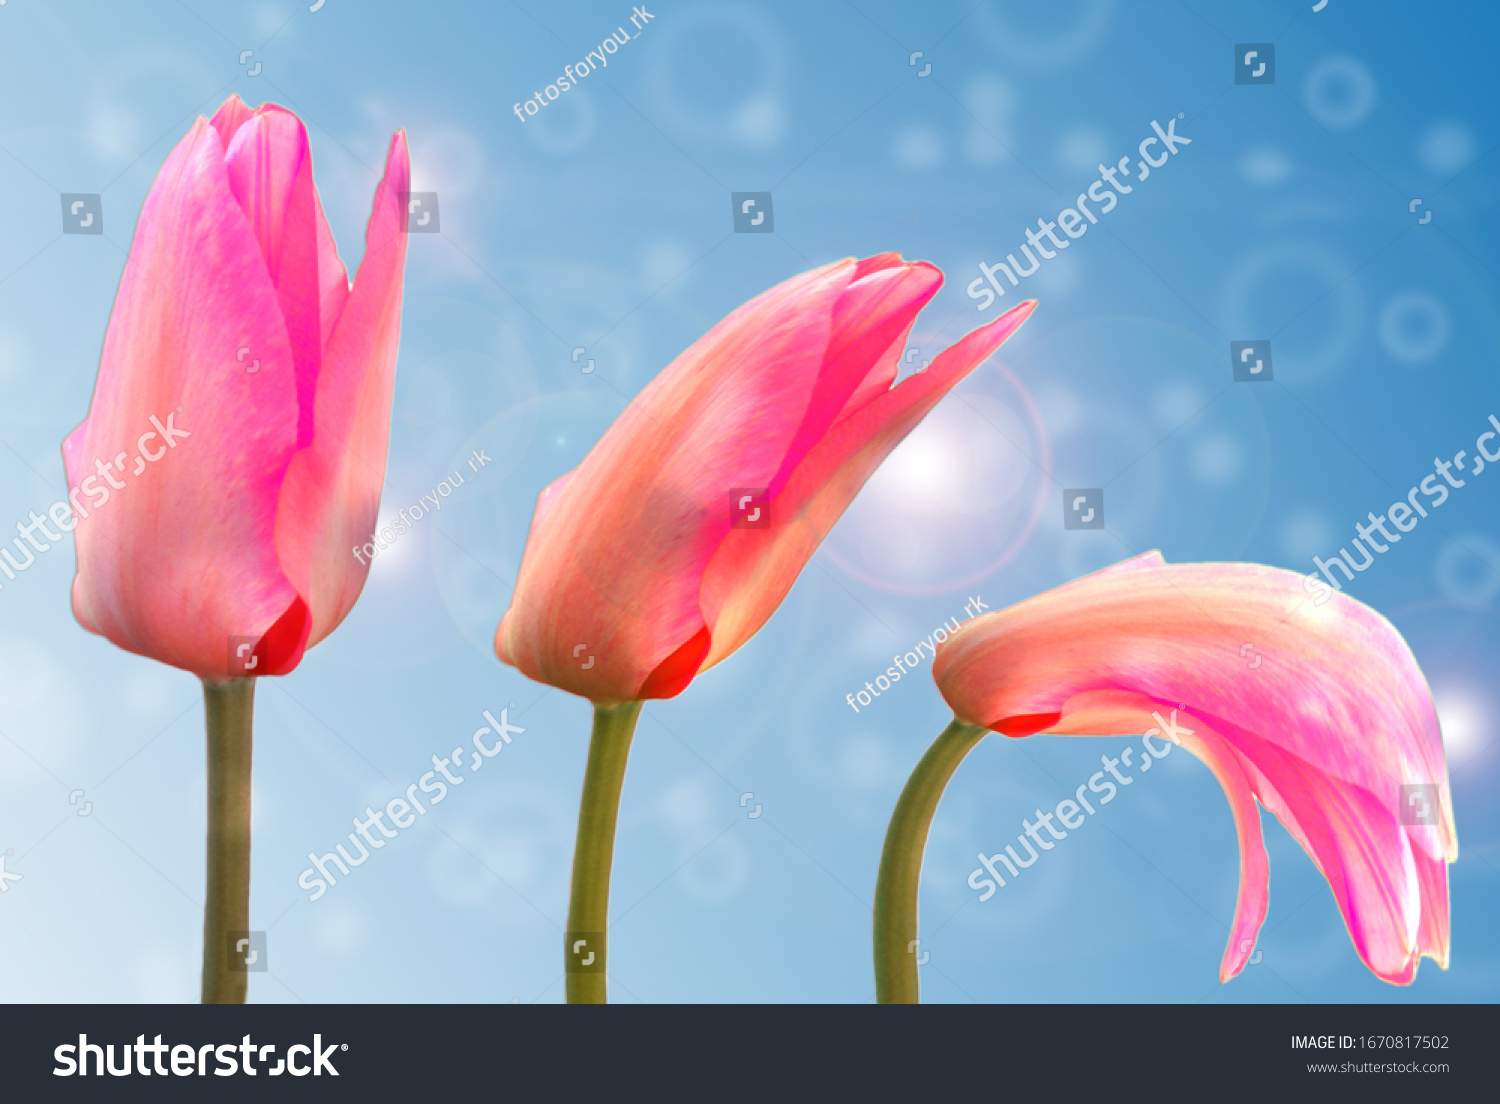 stock-photo--tulip-from-fresh-to-withere